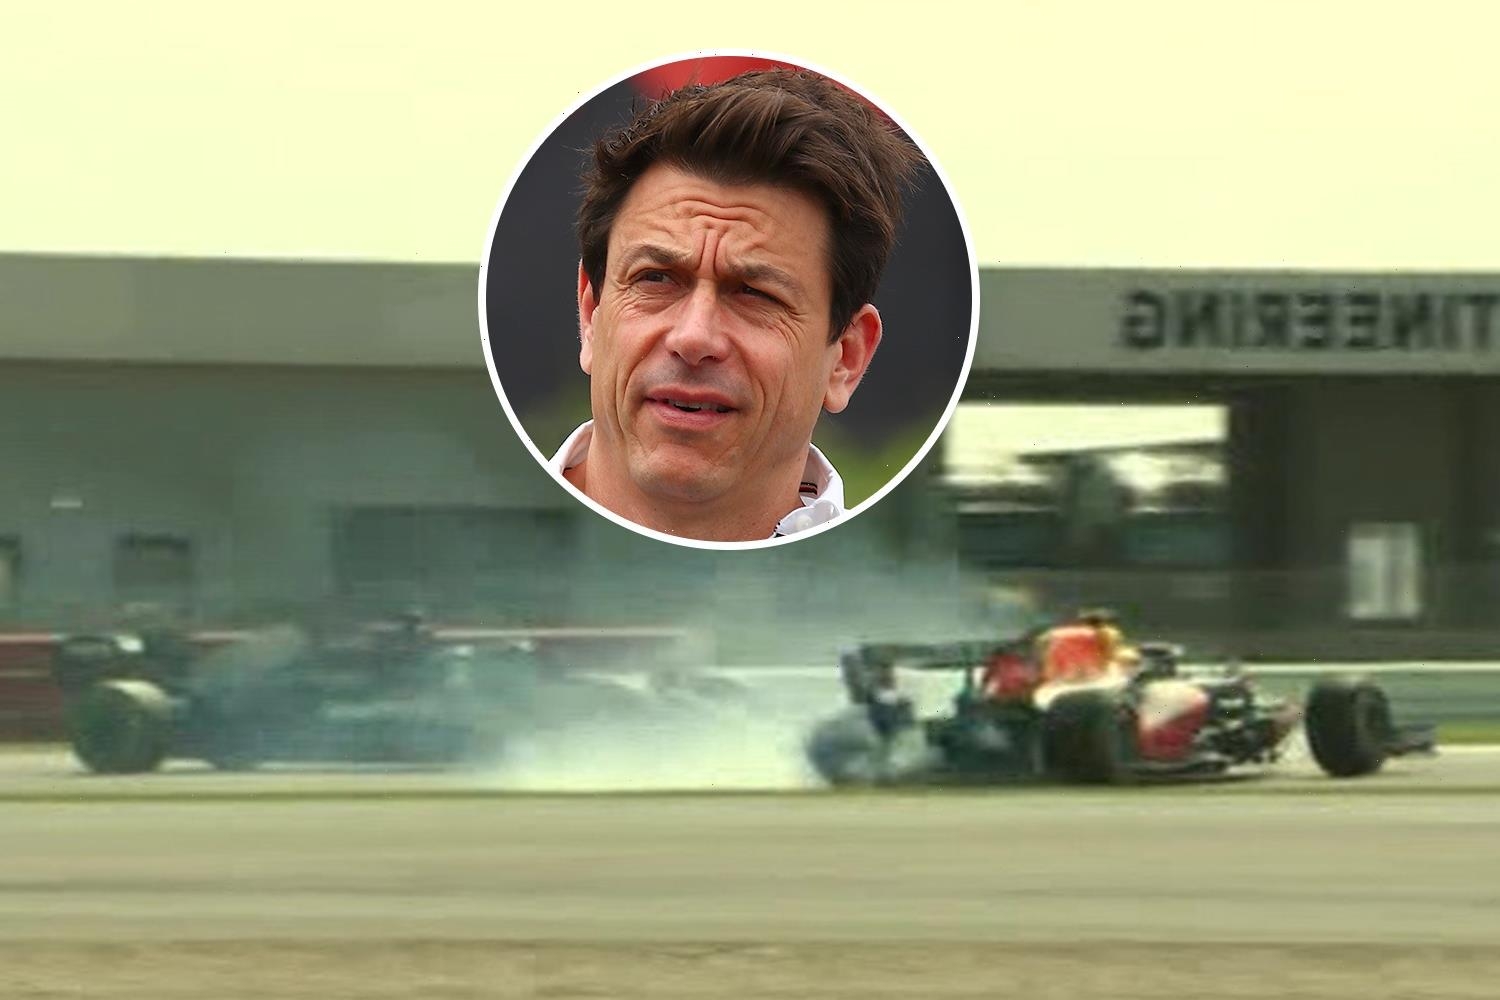 Lewis Hamilton ESCAPES further penalty in Verstappen crash row as Mercedes accuse Red Bull of 'tarnishing' star's name